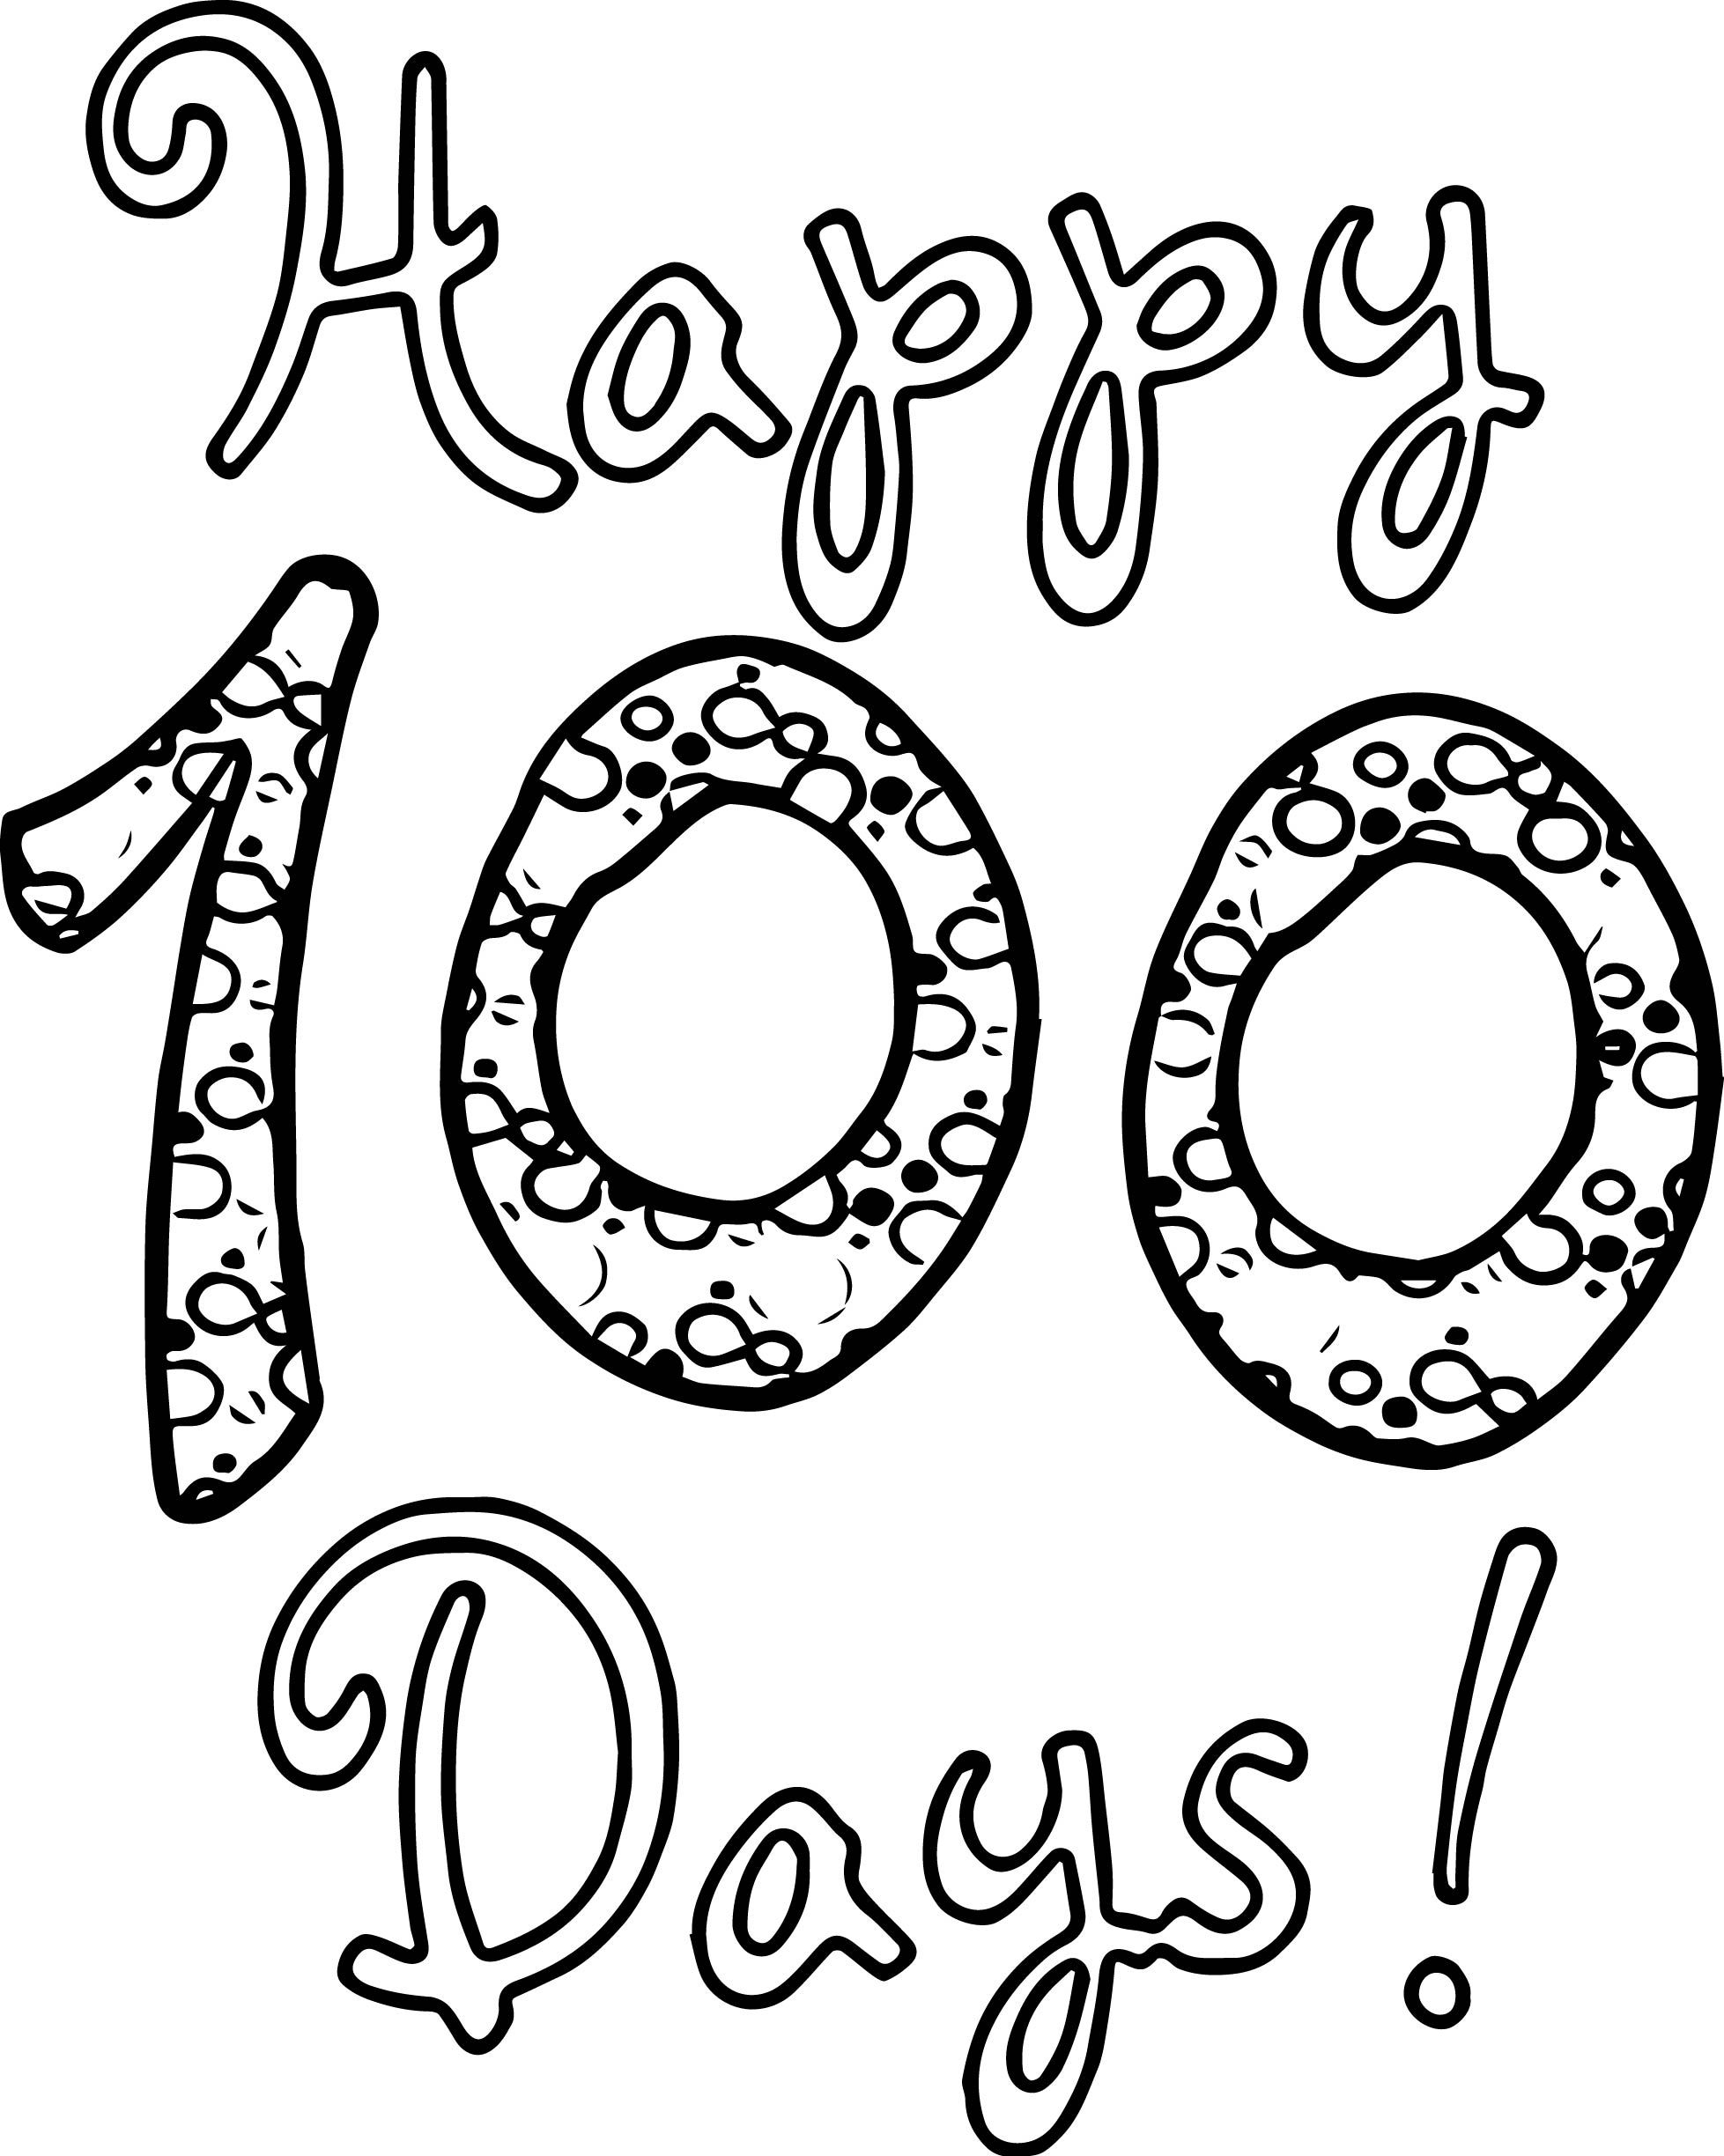 Happy 100 Days Of School Coloring Page School Coloring Pages